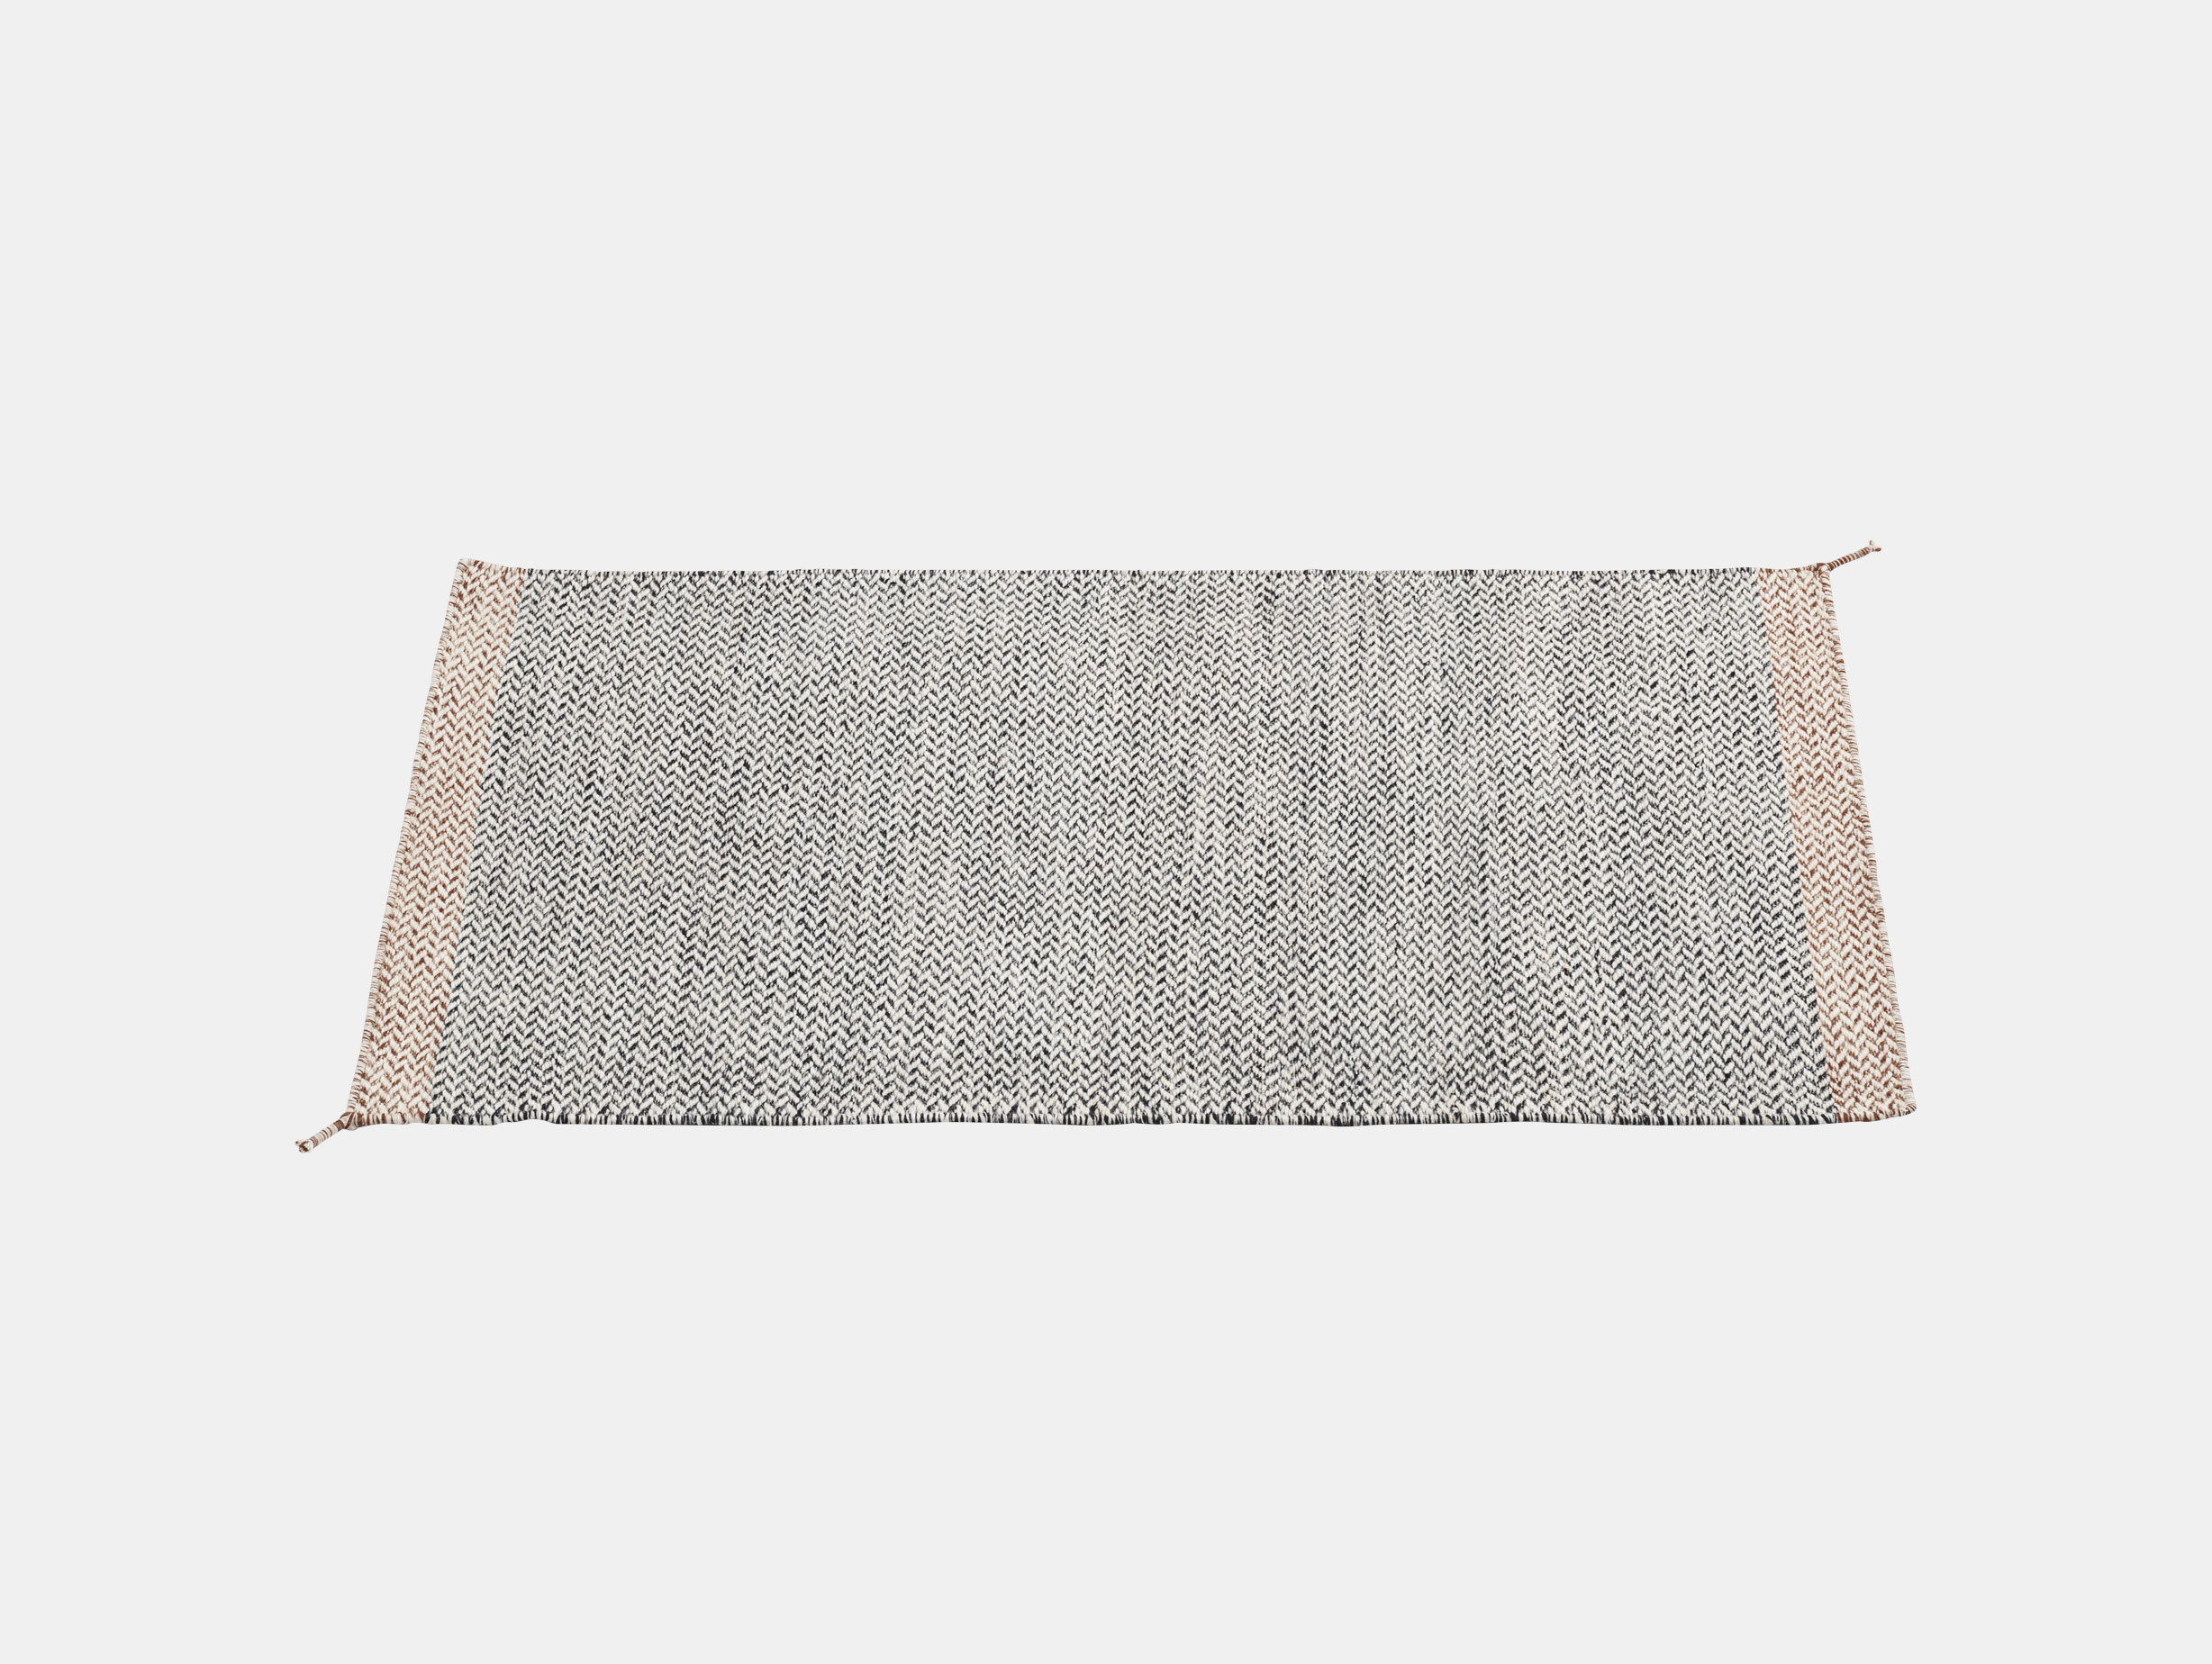 Ply Rug Black White 85X140 Med Res